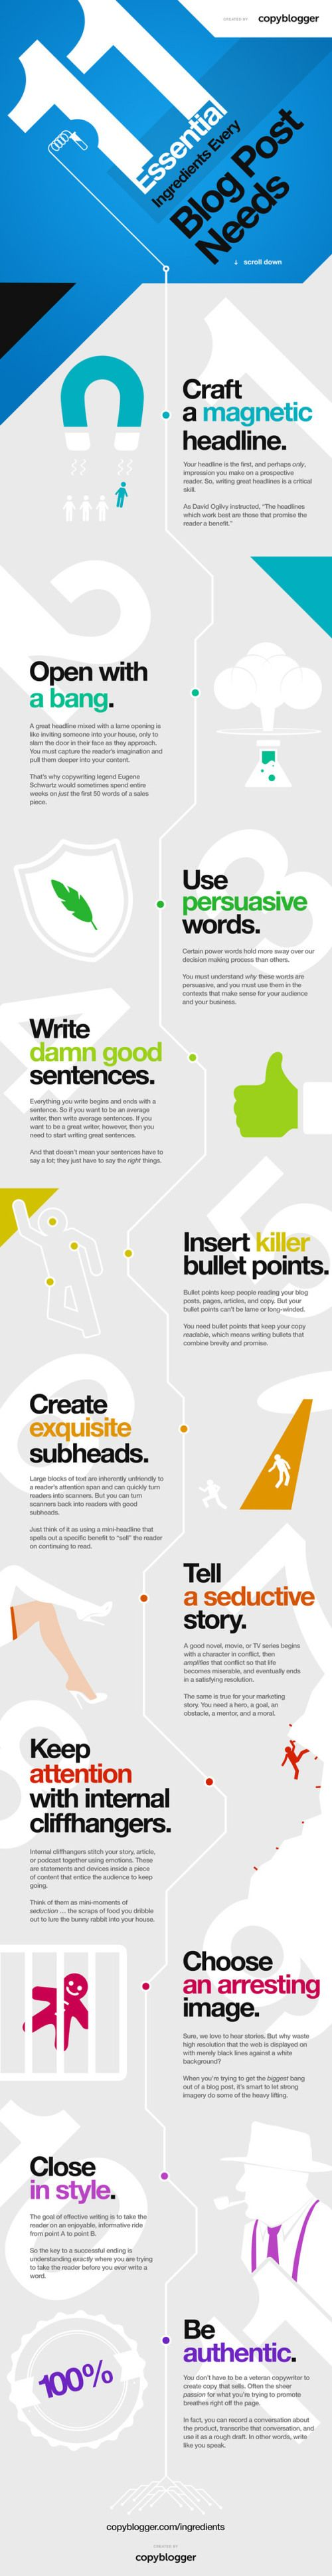 11 Essential Ingredients Every Blog Post Needs - http://www.coolinfoimages.com/infographics/11-essential-ingredients-every-blog-post-needs/